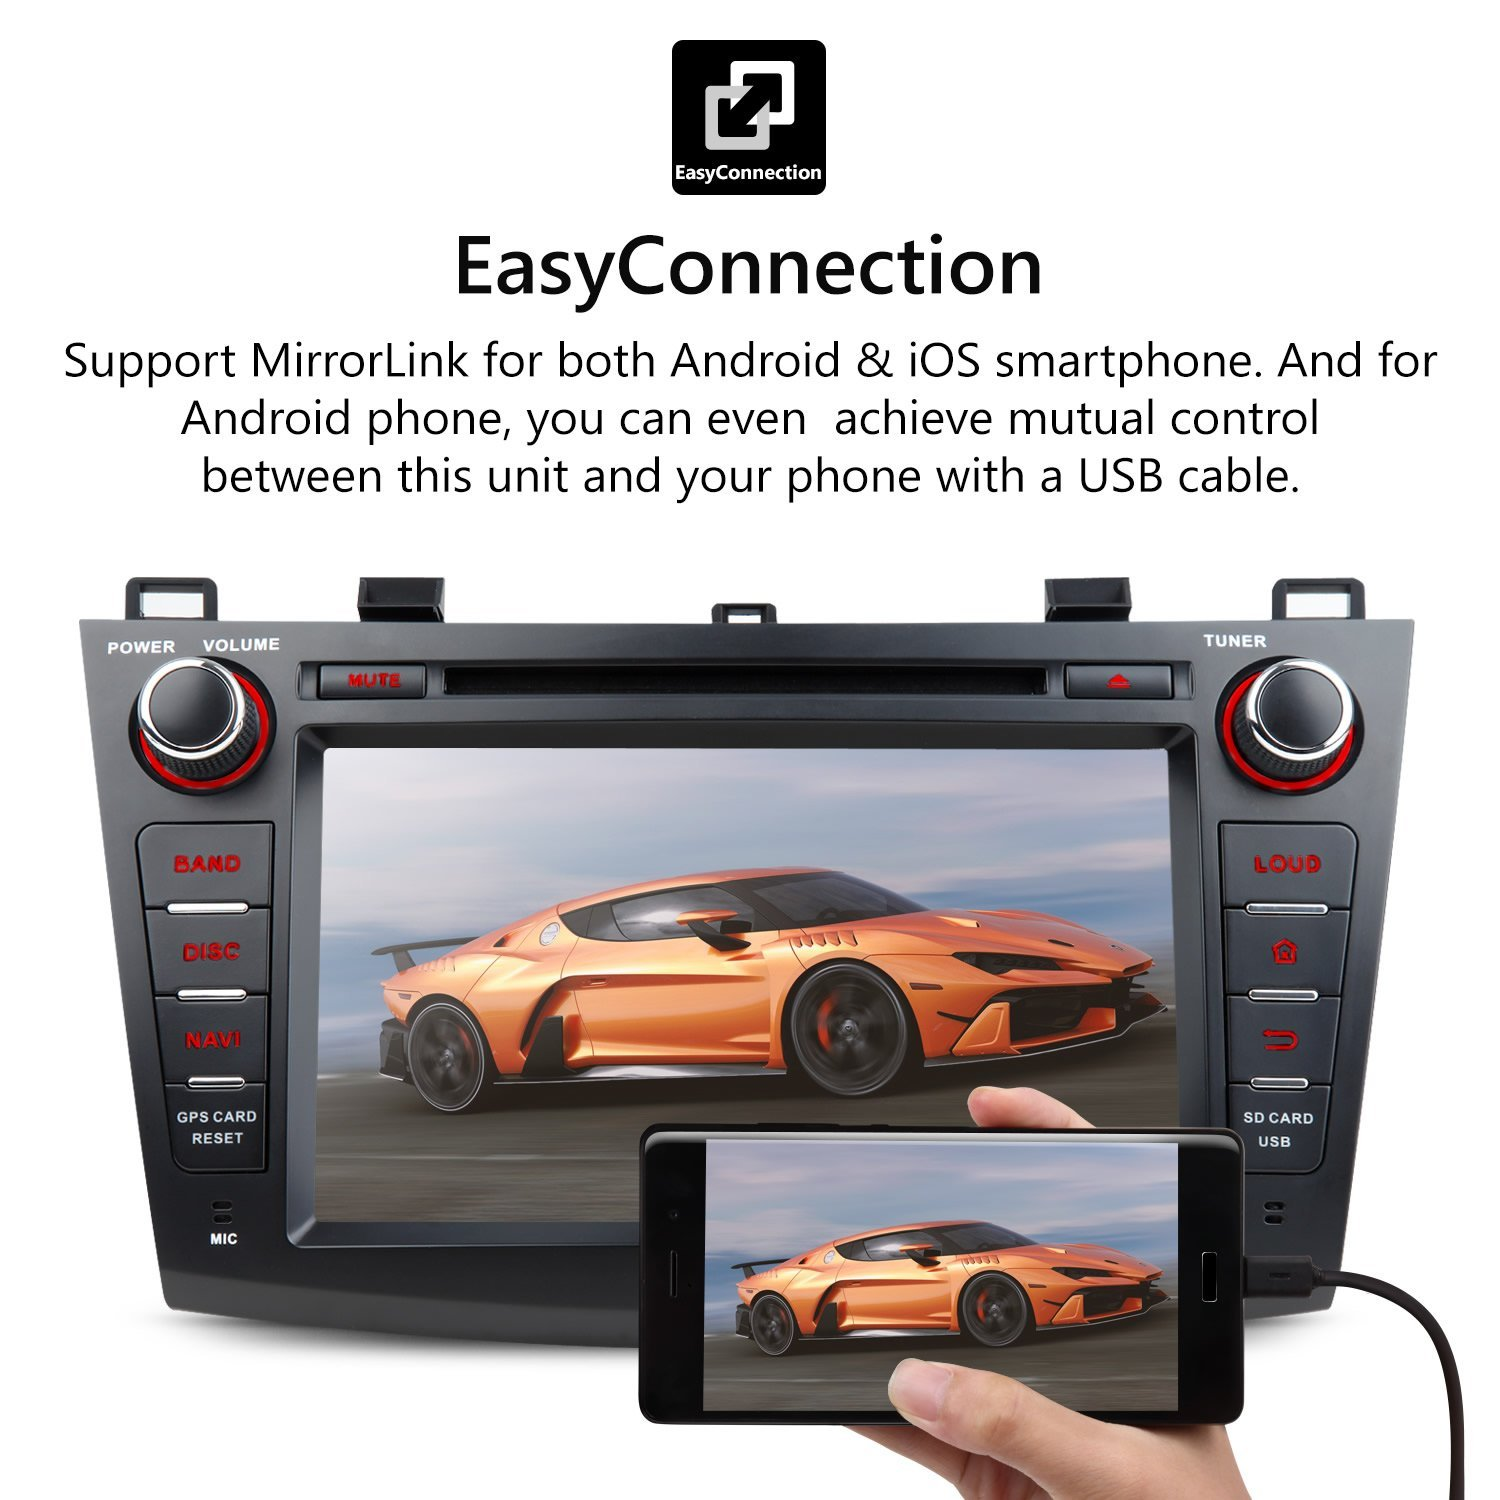 Eonon Ga8163 Car Stereo Radio Android 71 Nougat In Dash To Fix No Communication Bus Wiring Problems For 2004 Mazda Vehicles Gps Navigation Touch Screen Audio 3 Series 2010 2013 Quad Core 2gb Ram